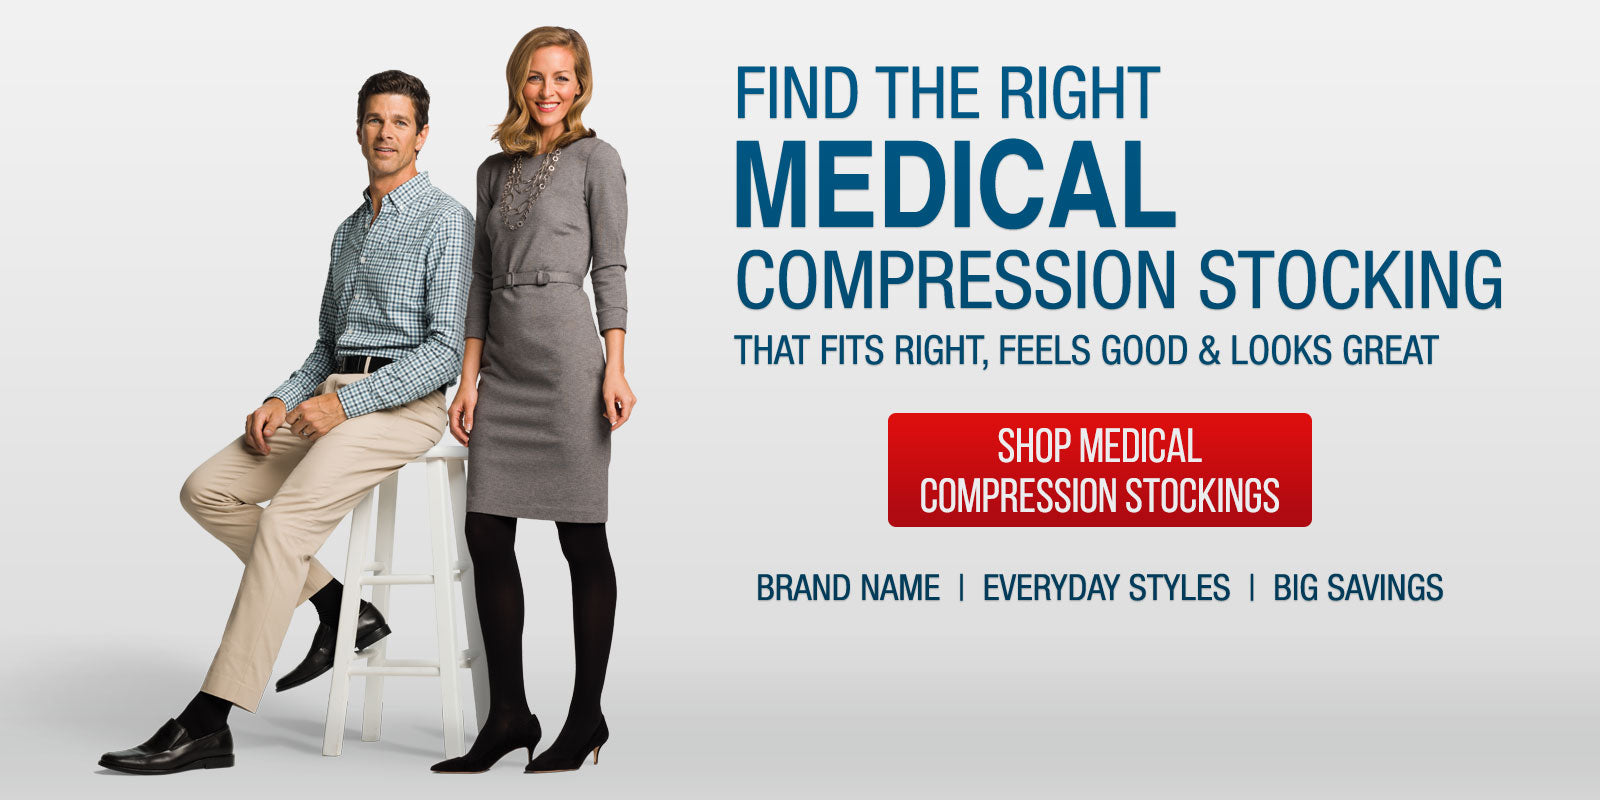 Find the right Medical Compression Stockings